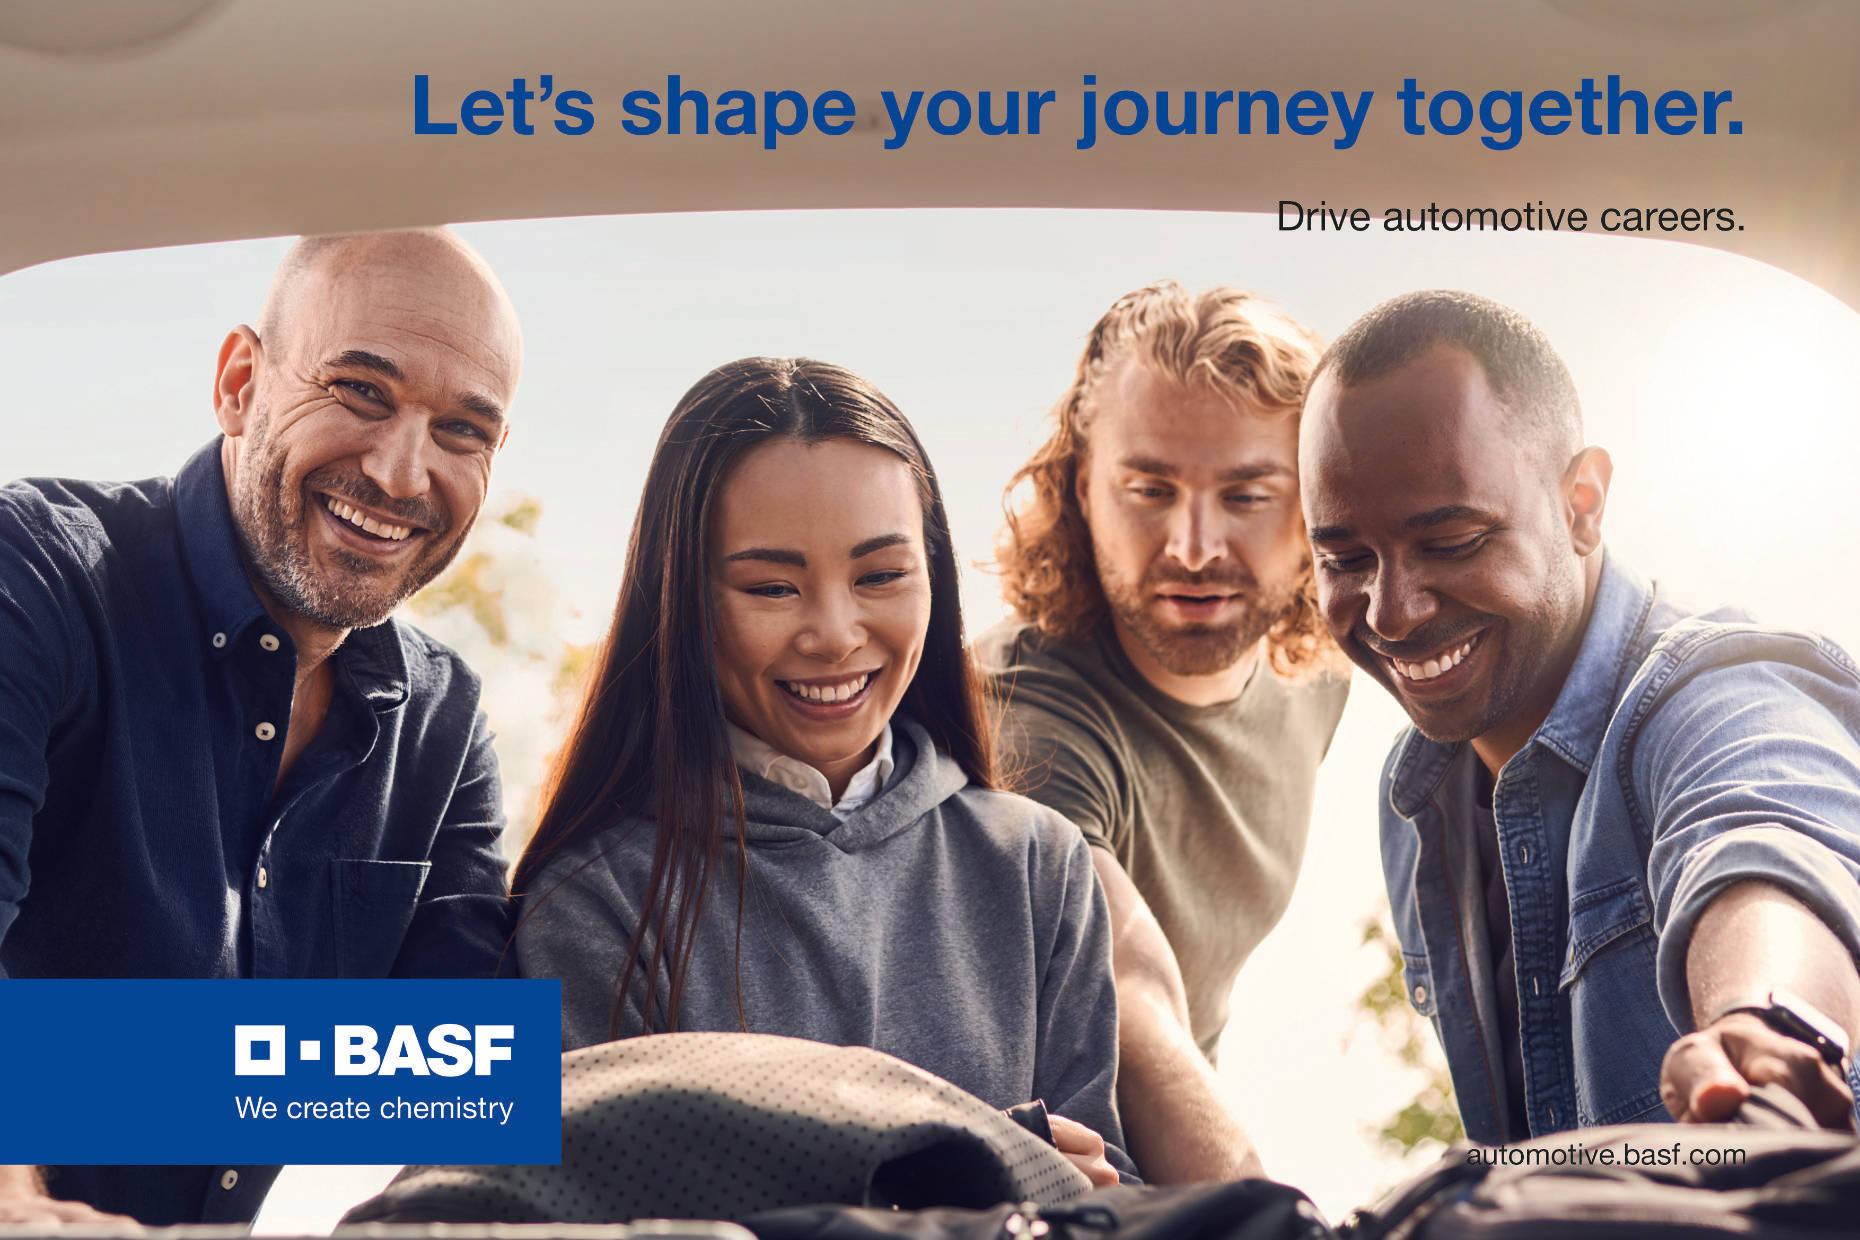 stiphout_BASF_Automotive_human-resources_01